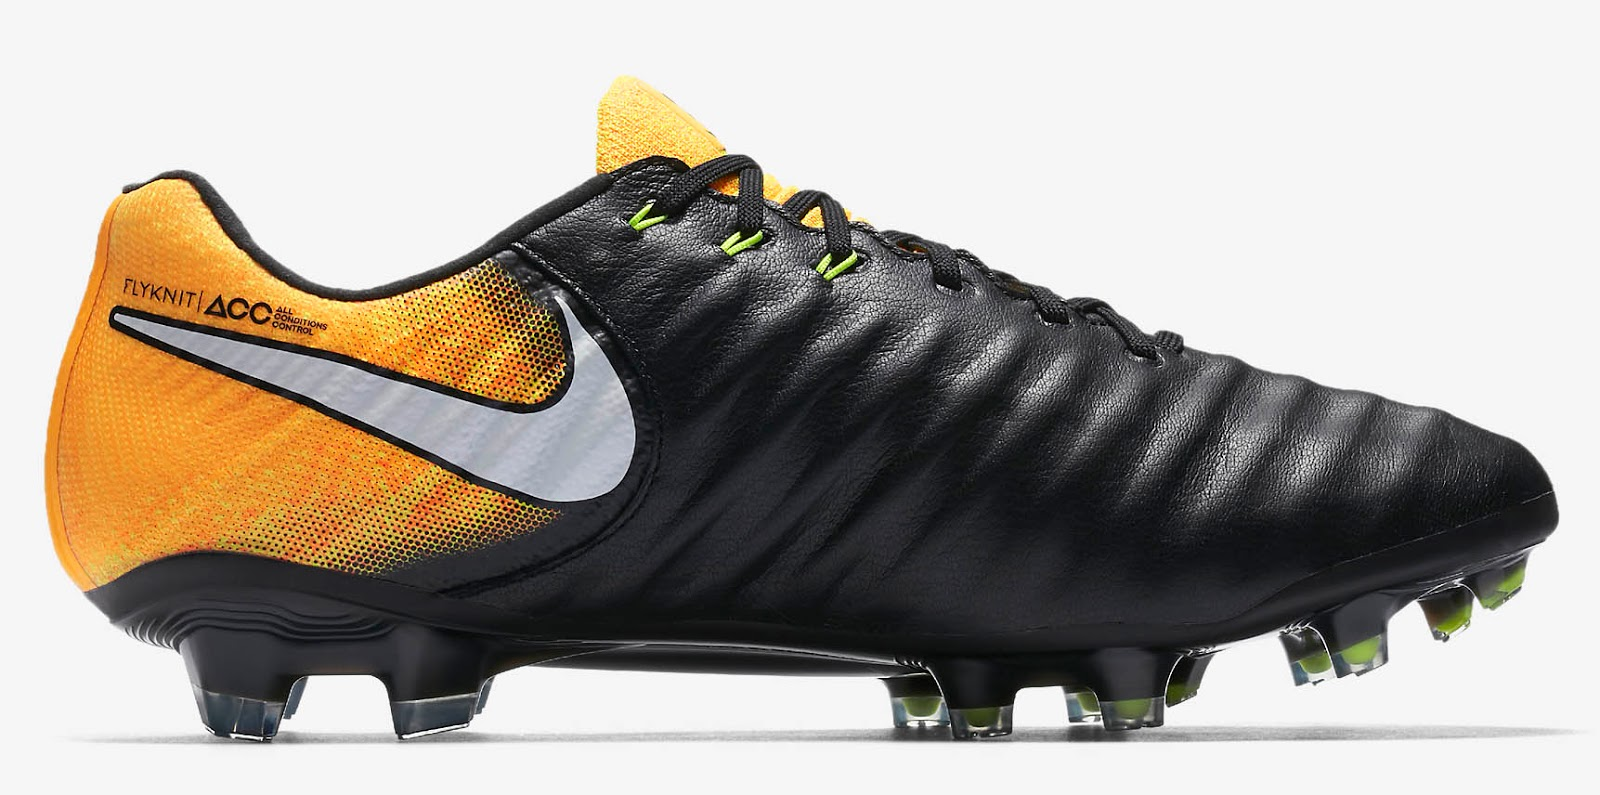 c4f1cc2bfaea93 Discount Full Next-Gen Nike Tiempo 2017 Overview - Legend VII vs ...